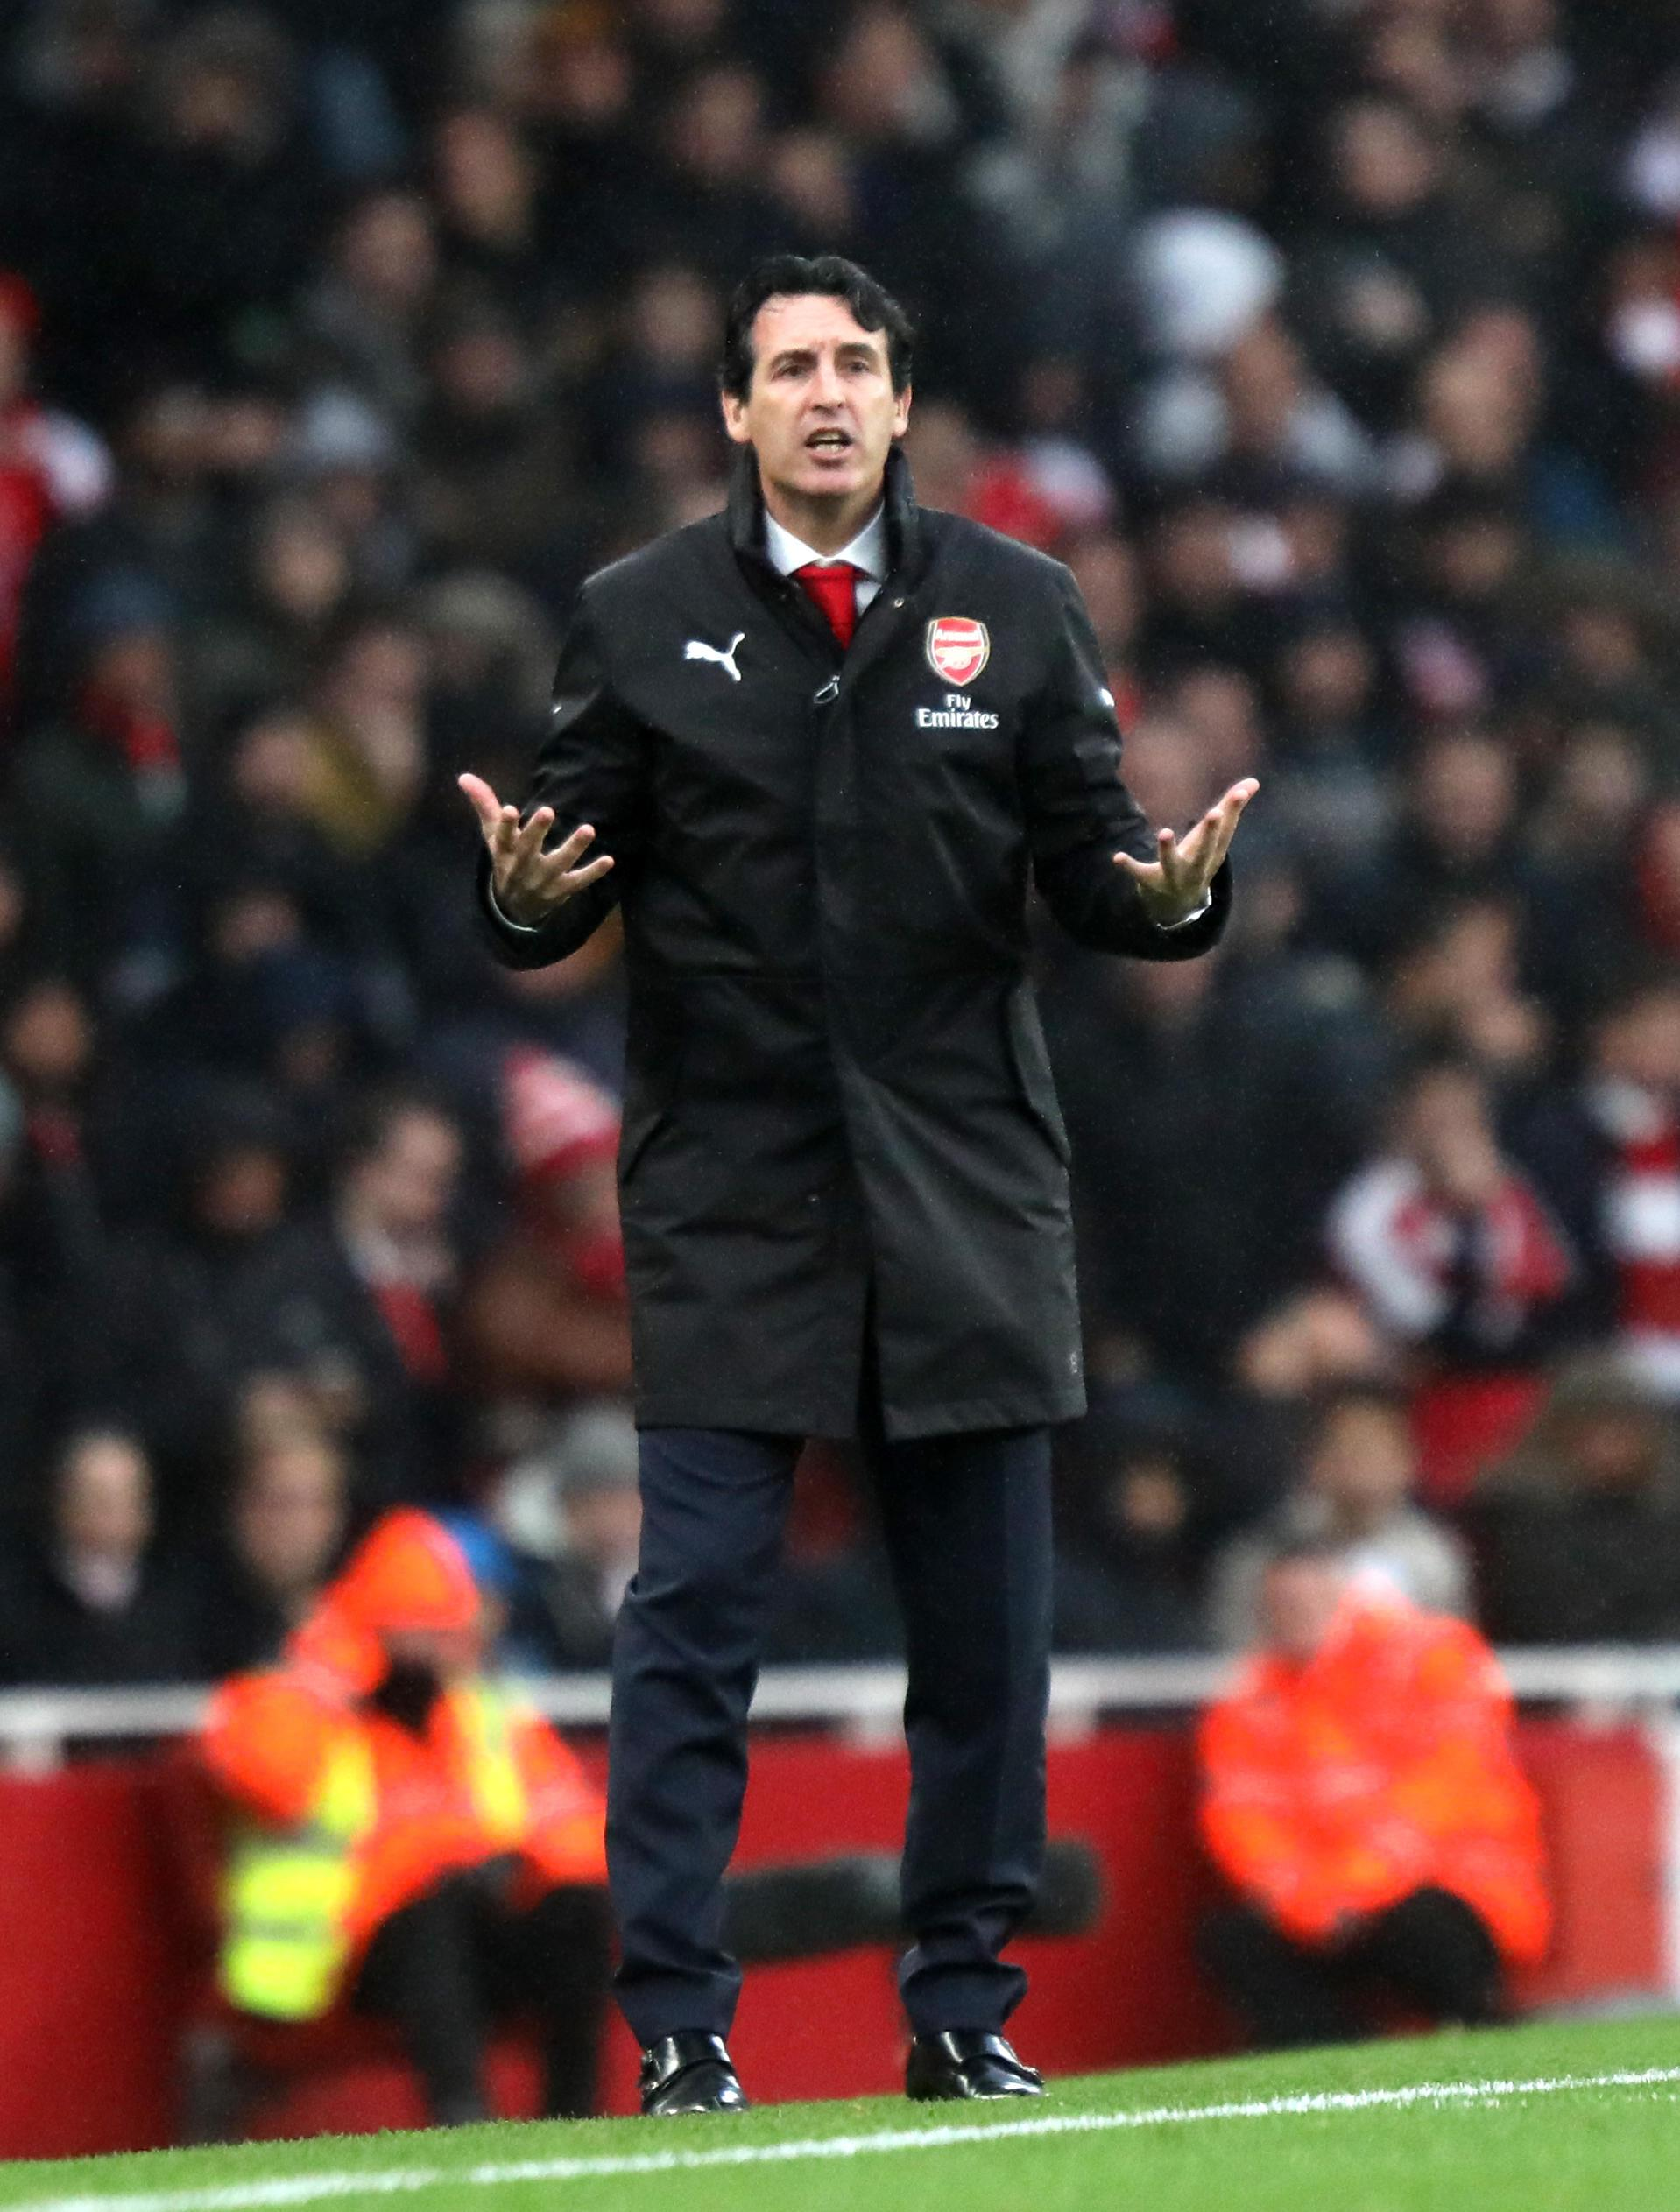 Emery will hope his side can contunie their winning form against United